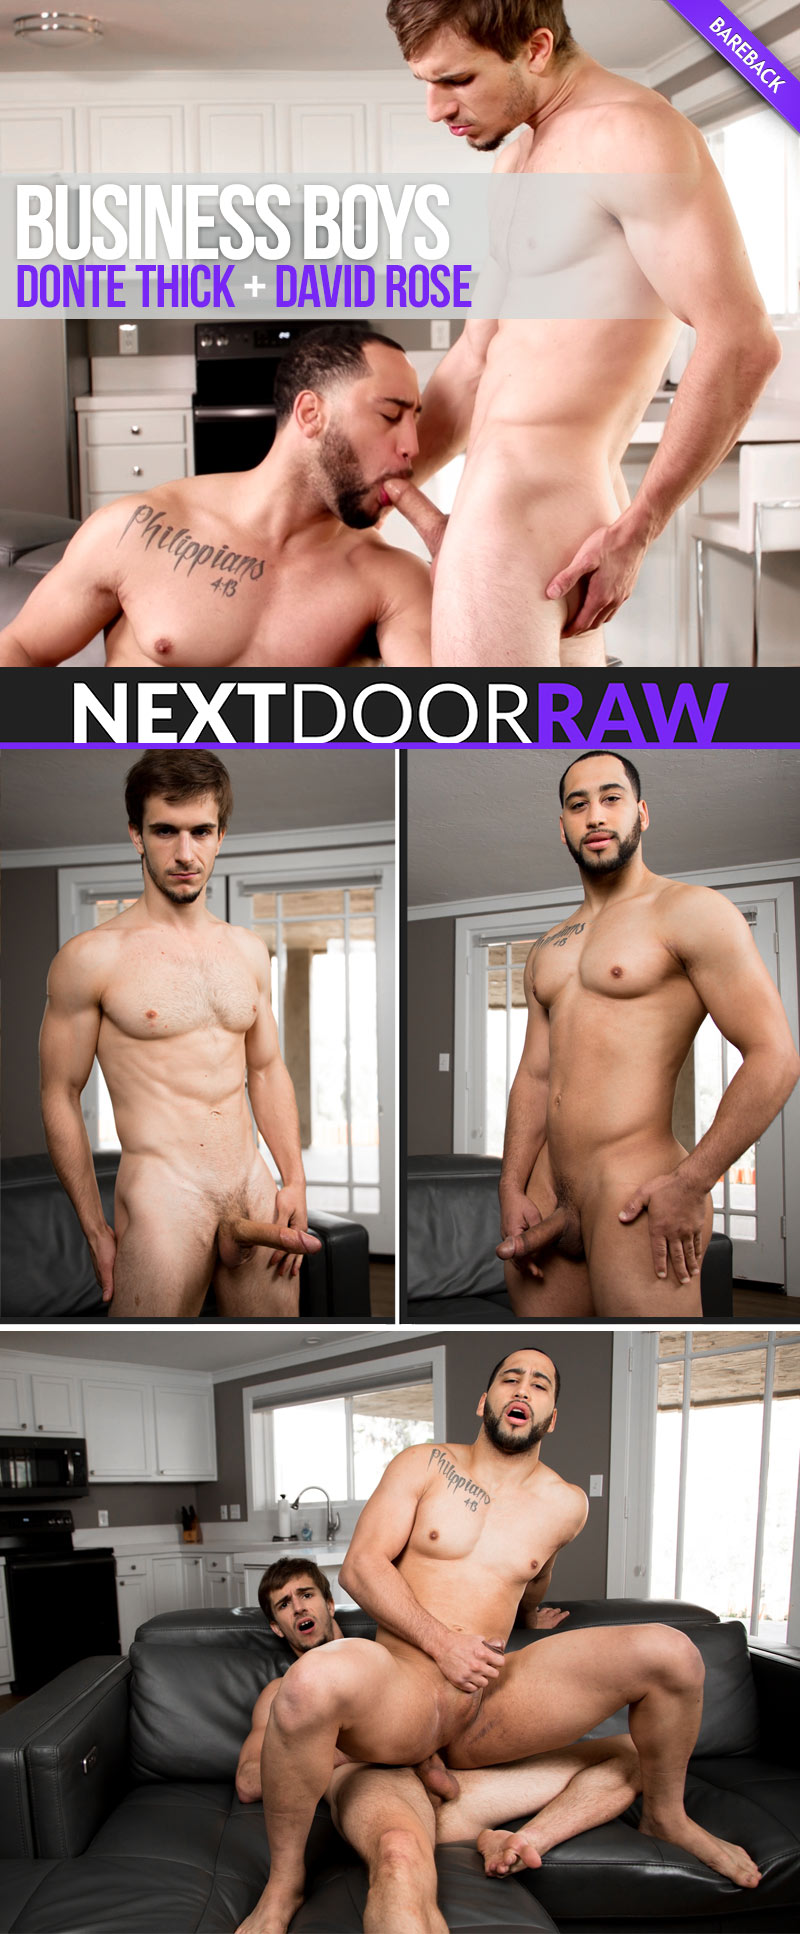 Business Boys (Donte Thick Fucks David Rose) (Bareback) at NextDoorRAW!